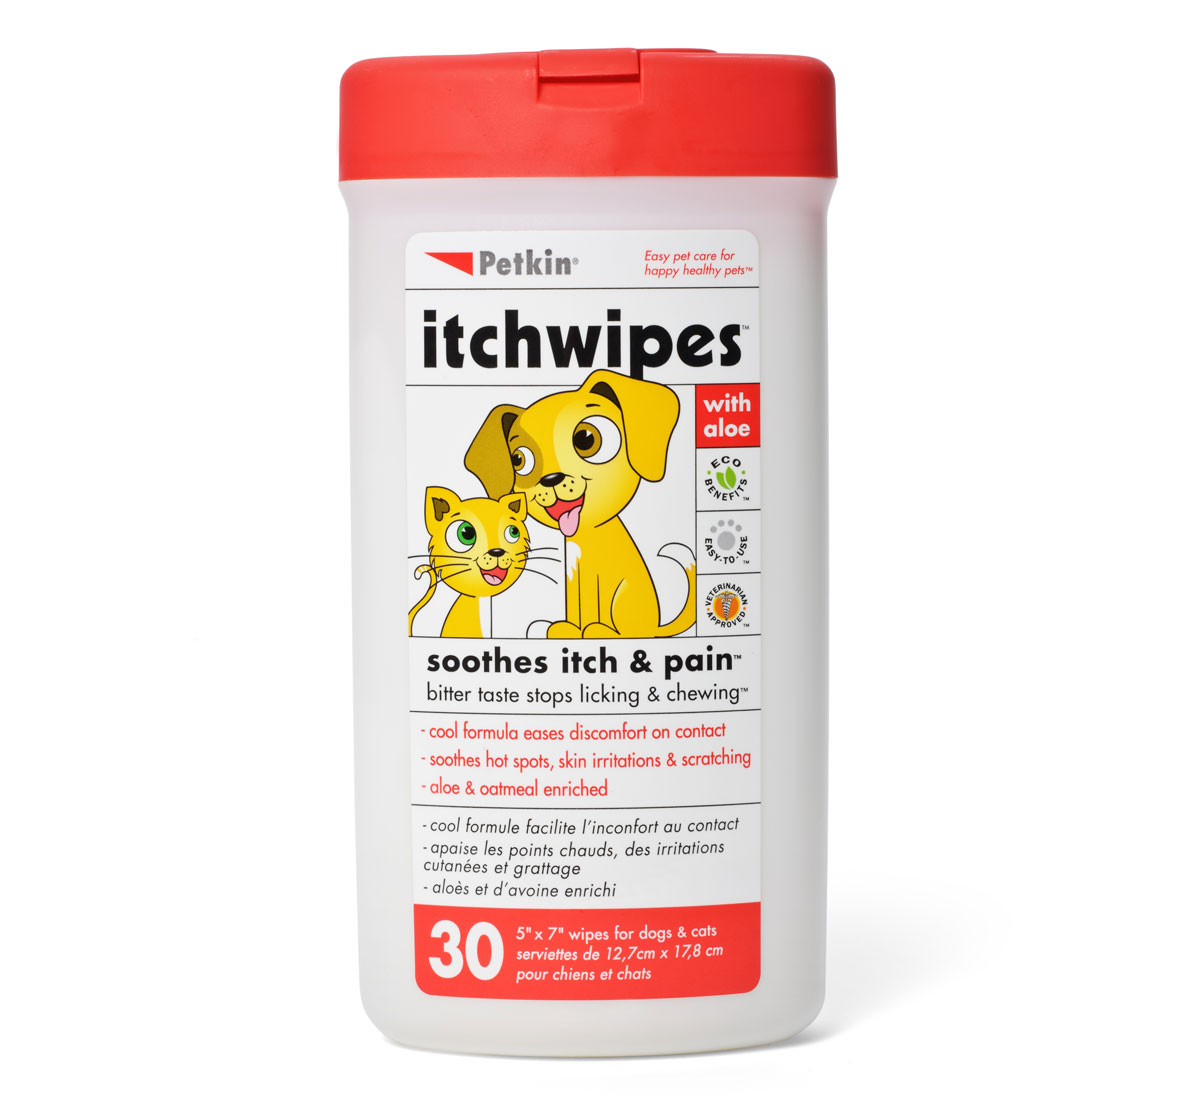 Petkin ItchWipes  For Dog & Cat - 30 pieces